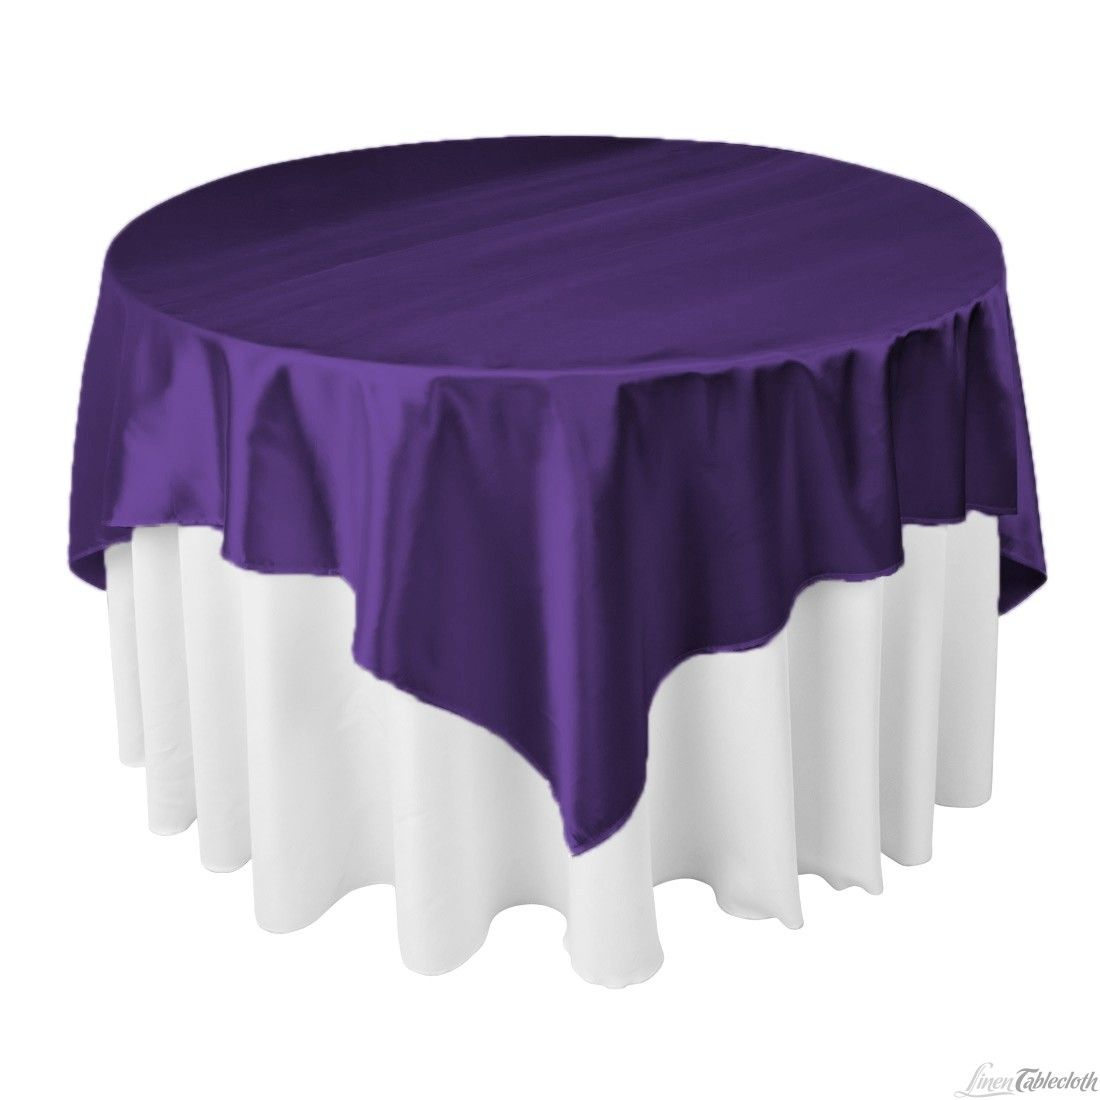 Buy 72 Inch Square Purple Satin Table Overlay To Match Your Wedding  Tablecloths At LinenTablecloth!